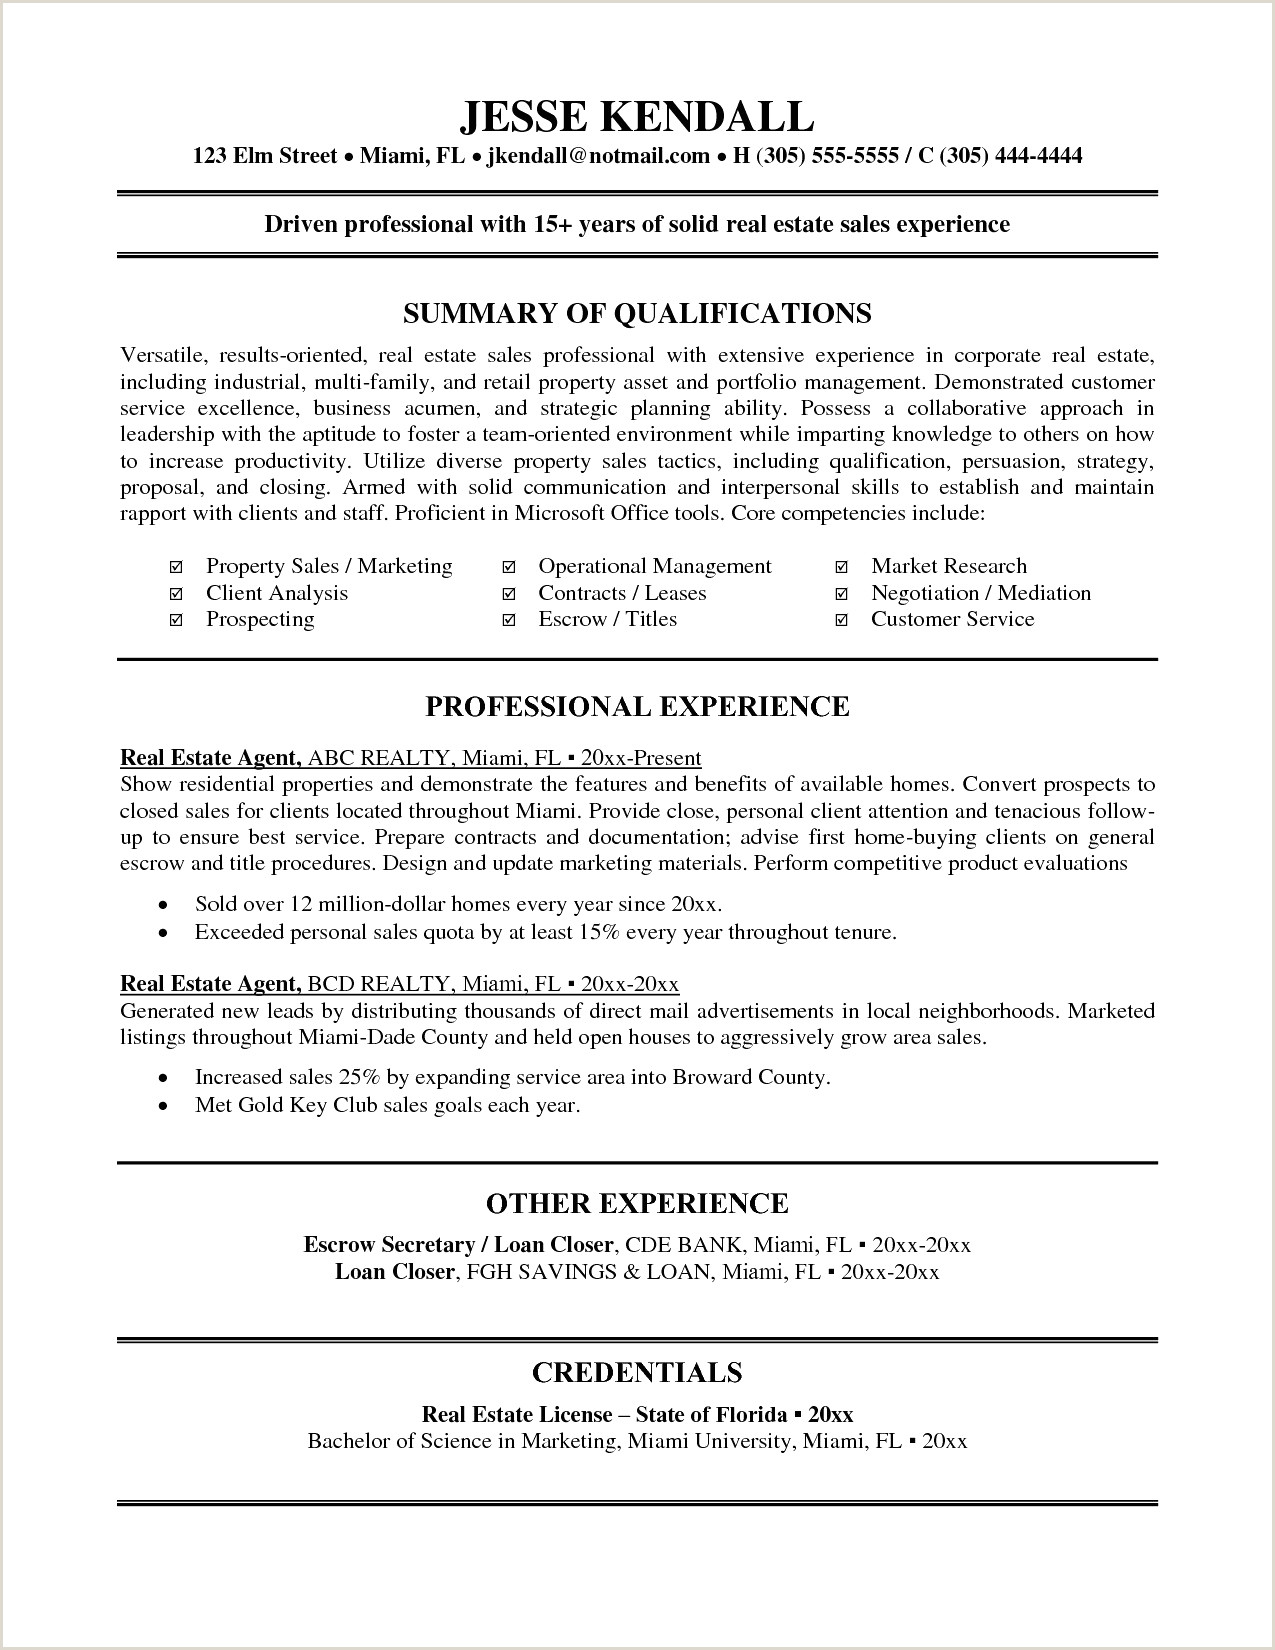 Resume for Real Estate Agents 50 Lovely Real Estate Agent Flyer Speak2net Resume Samples